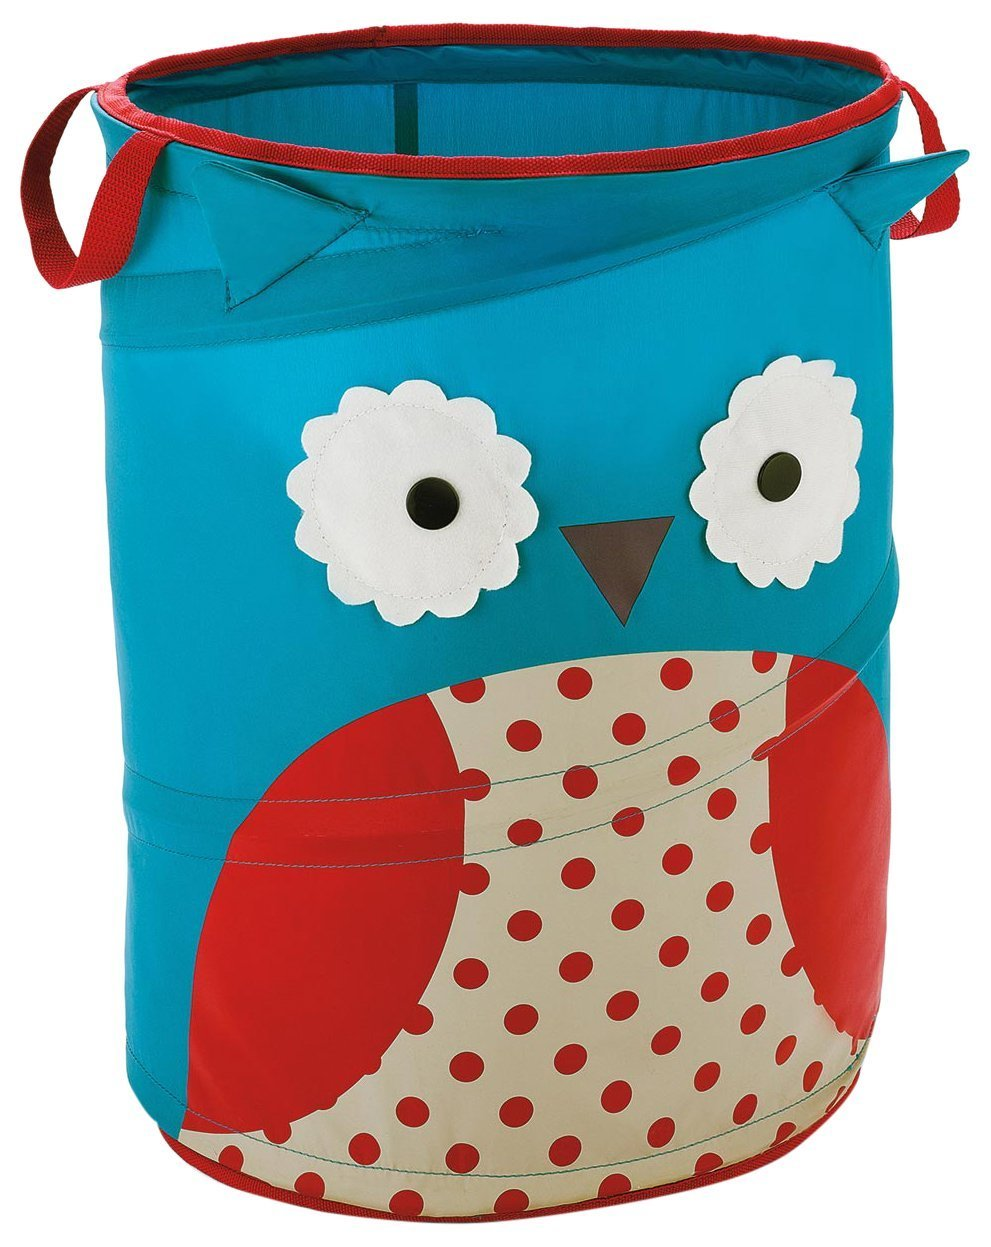 skip hop zoo pop-up hamper, owl laundry hamper, kids laundry hamper, best laundry hampers for nursery, laundry hampers for nursery, cute laundry hamper, affordable laundry hamper, best nursery hampers, nursery hampers